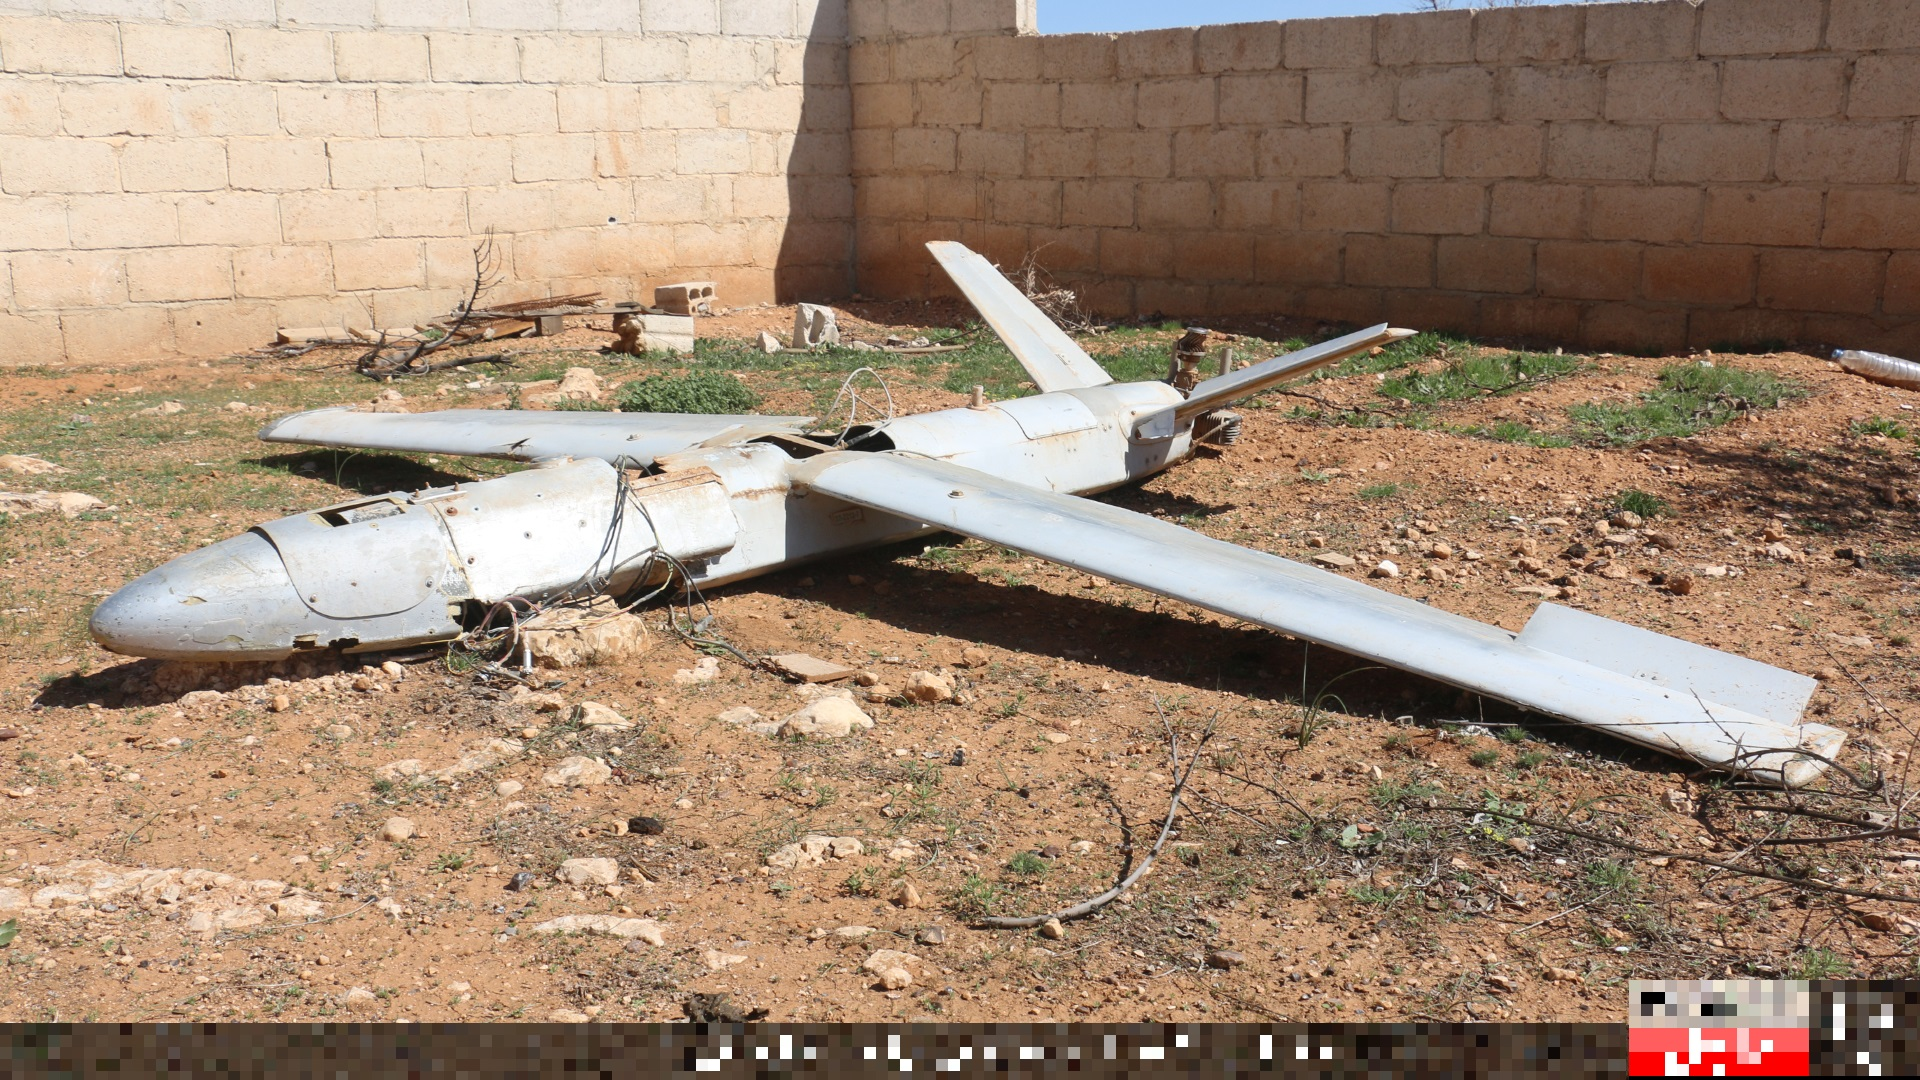 Mysterious Combat Drone Crashes In Western Iraq (Photos)